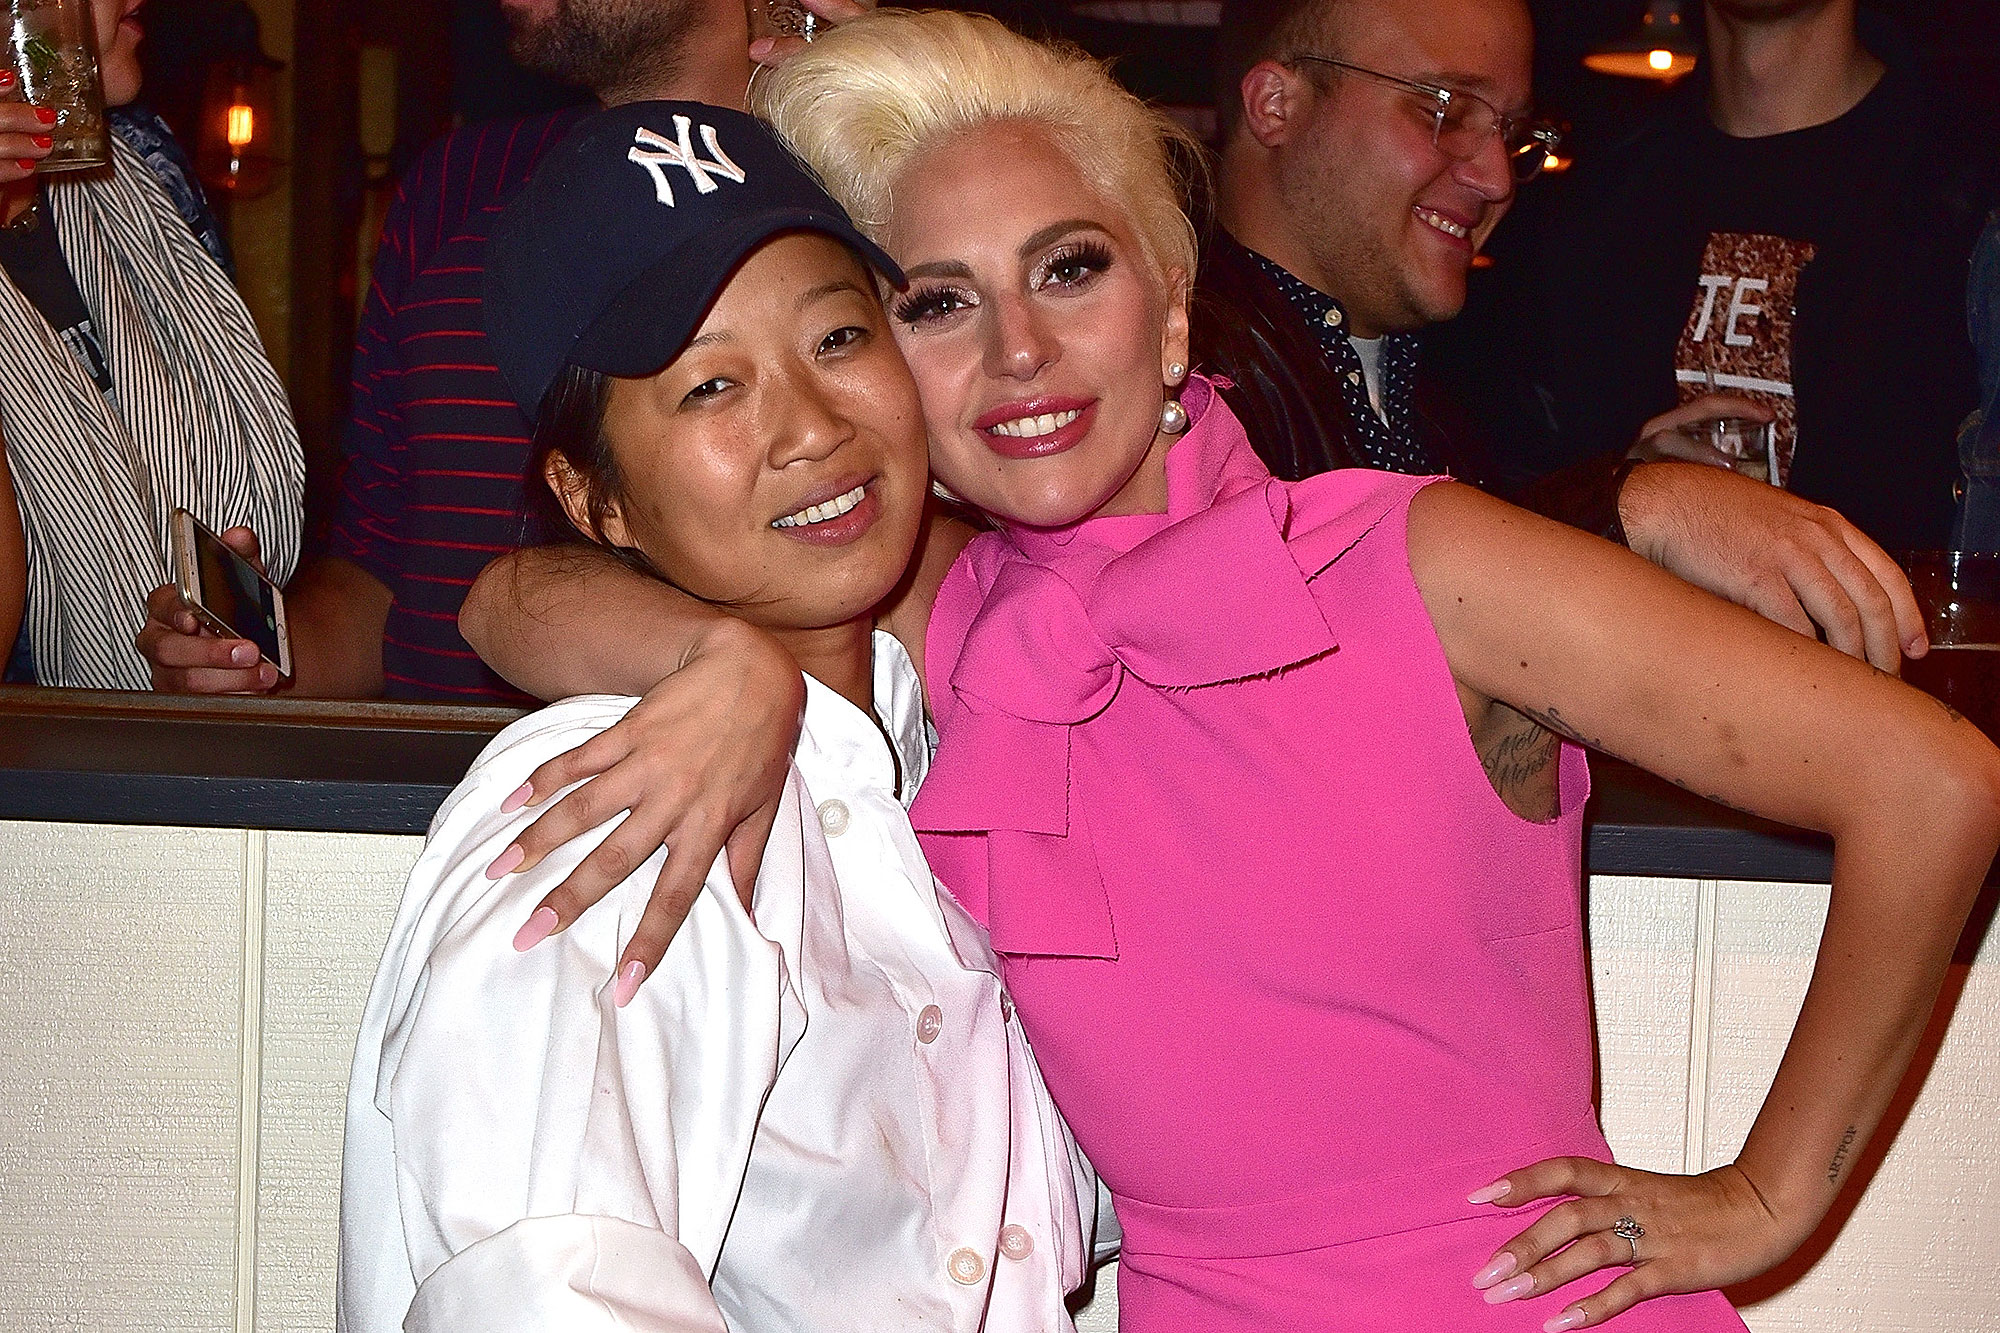 How Bo O'Connor Went From Lady Gaga's Childhood Bestie to Her Personal Chef: 'Our Relationship Hasn't Changed'